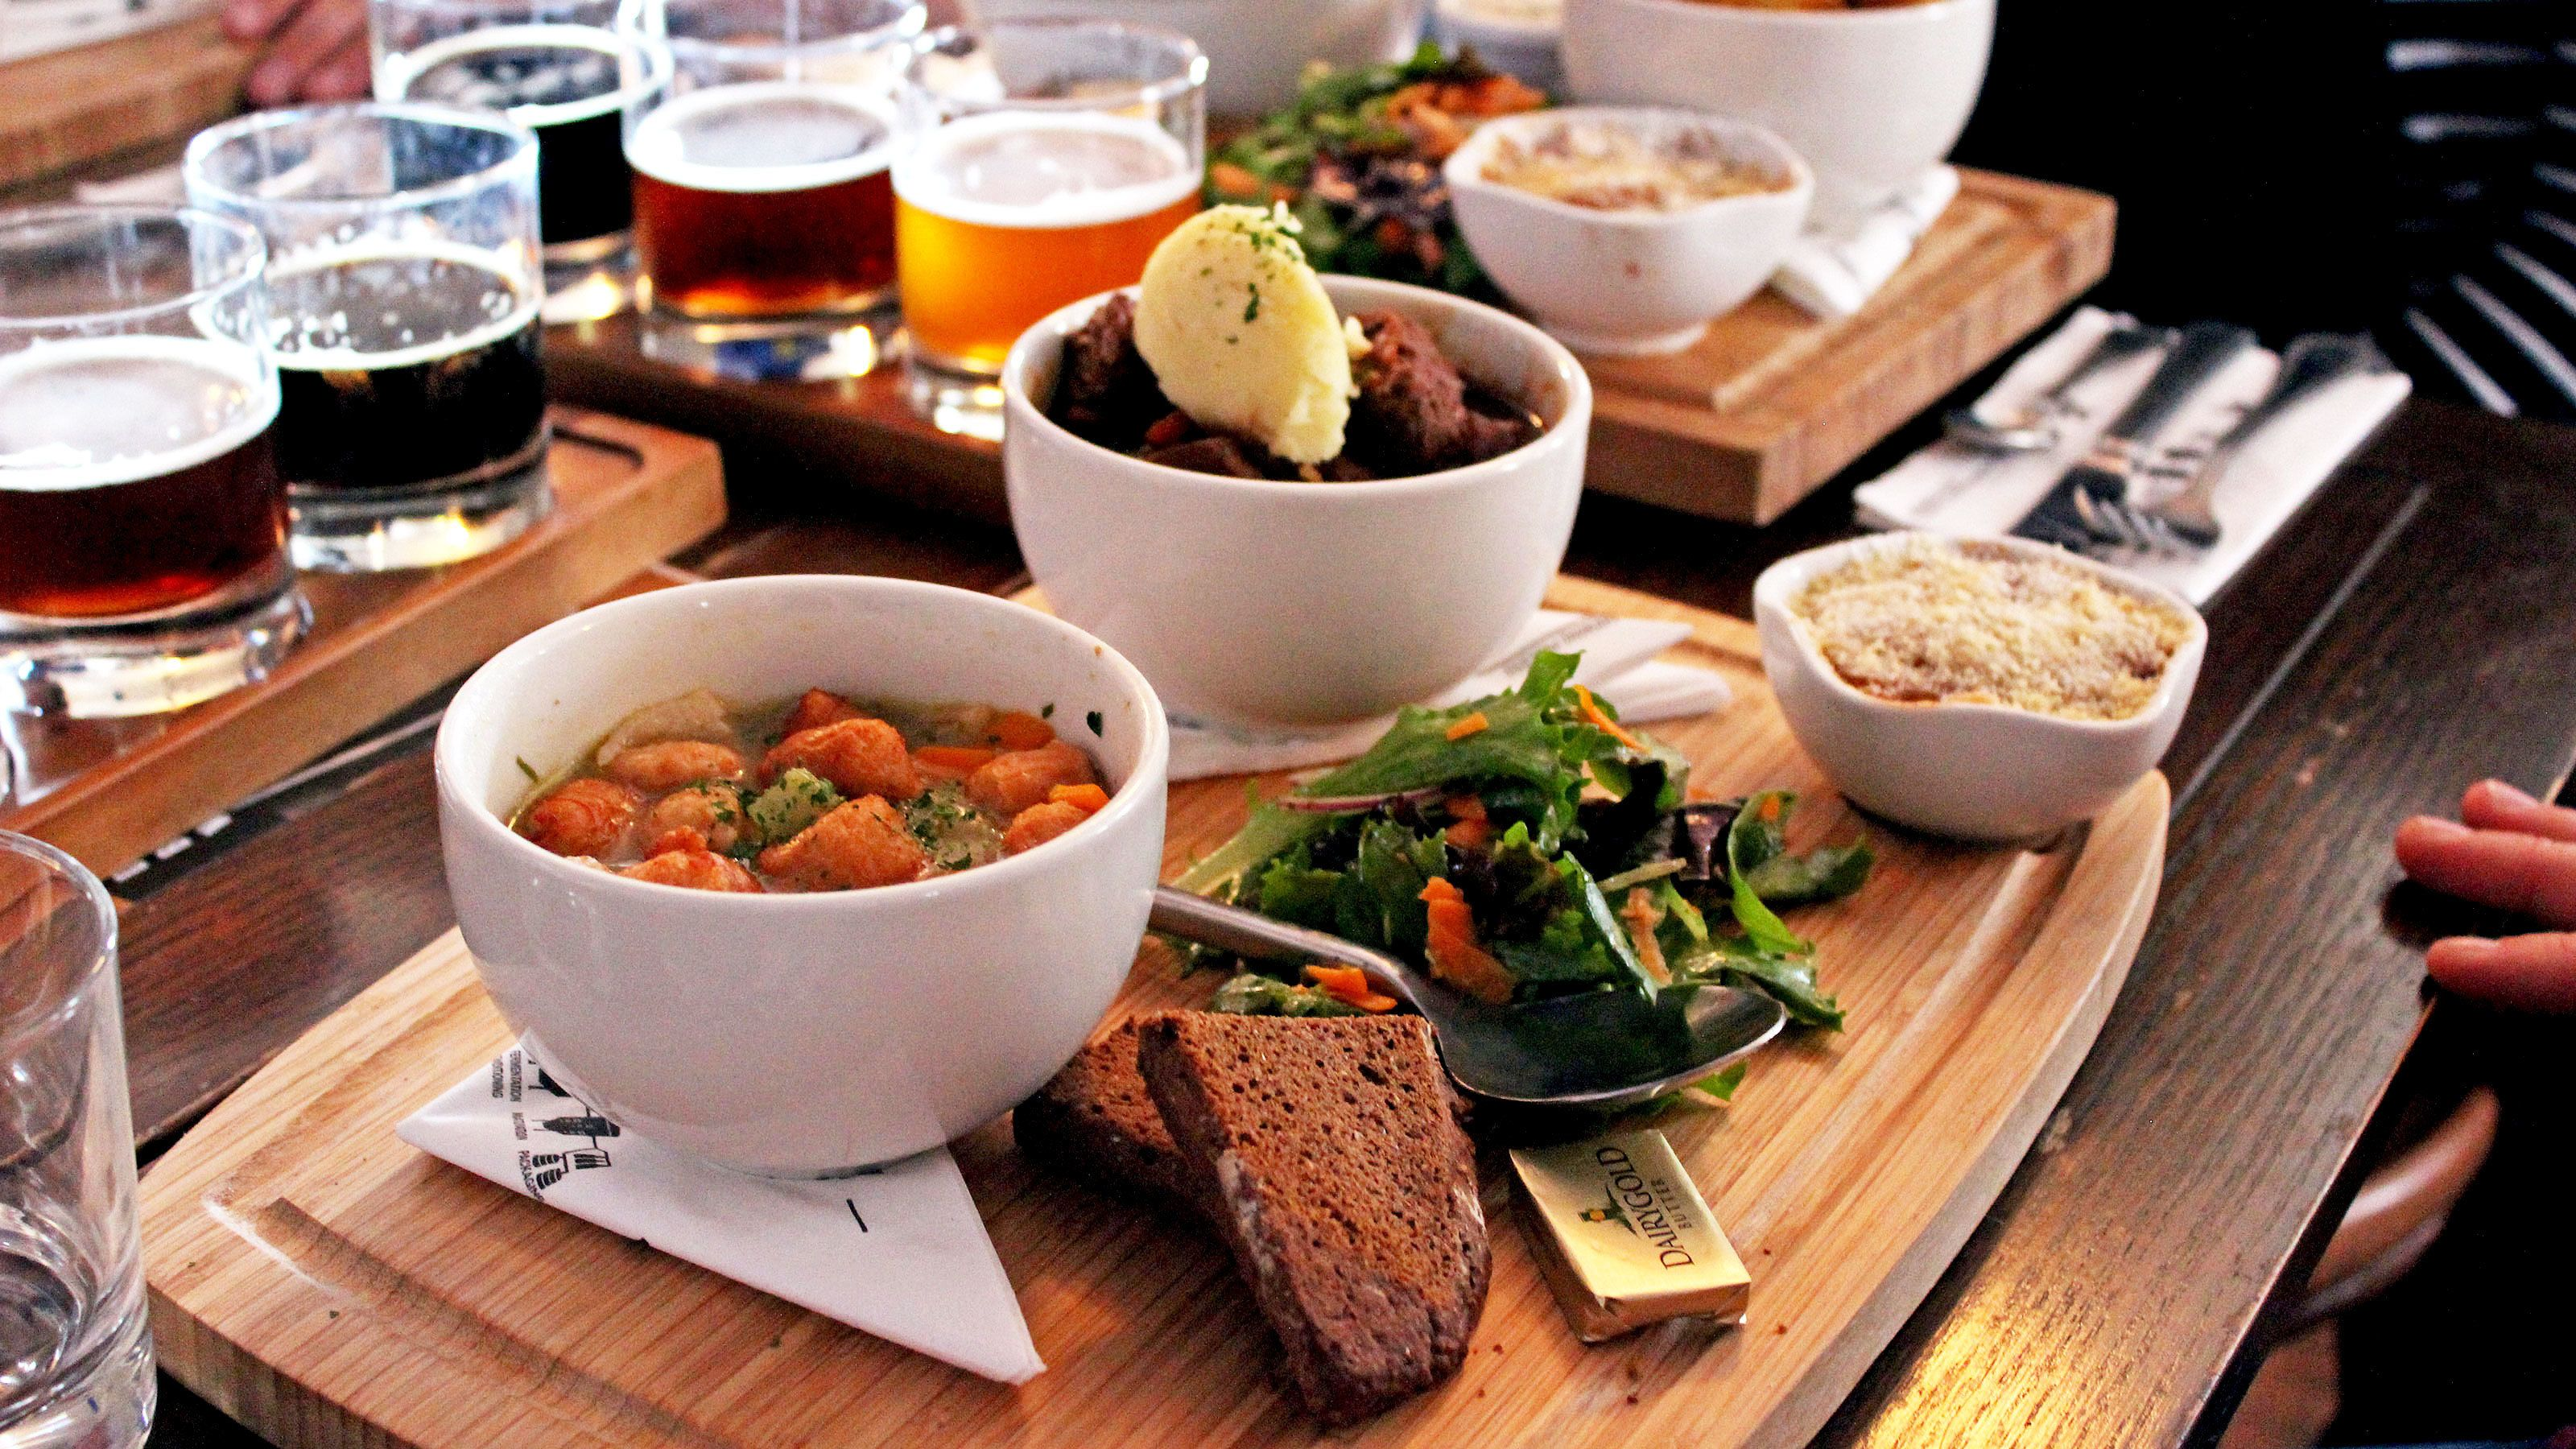 Full course meals served with beverages in Ireland